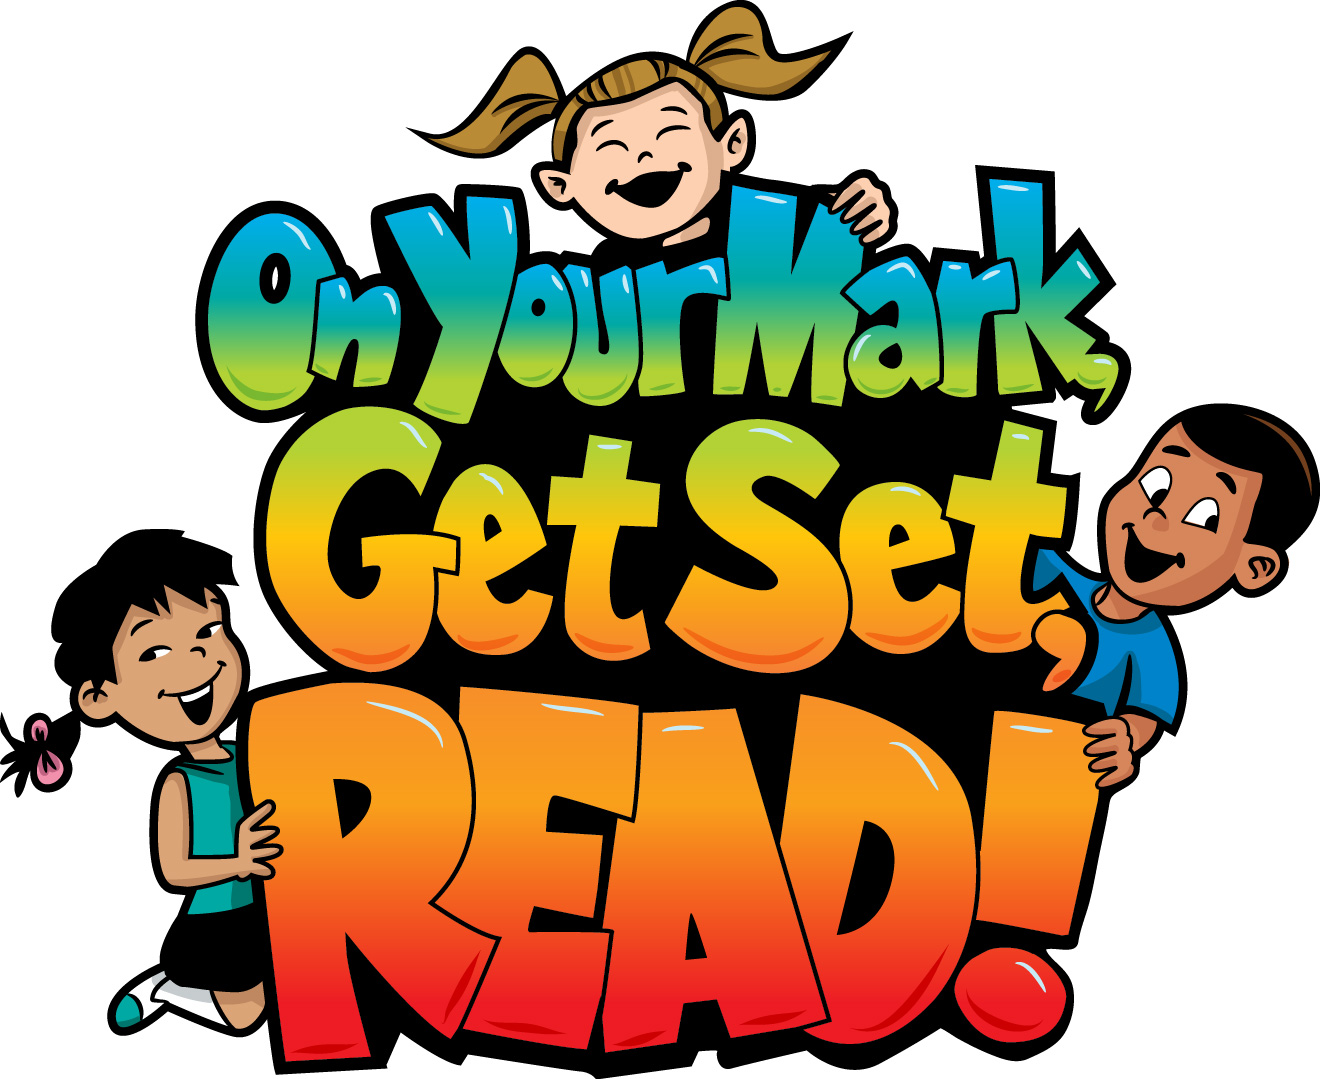 Worksheet Reading Programs For Children pleasant hills library childrens area summer reading club has started